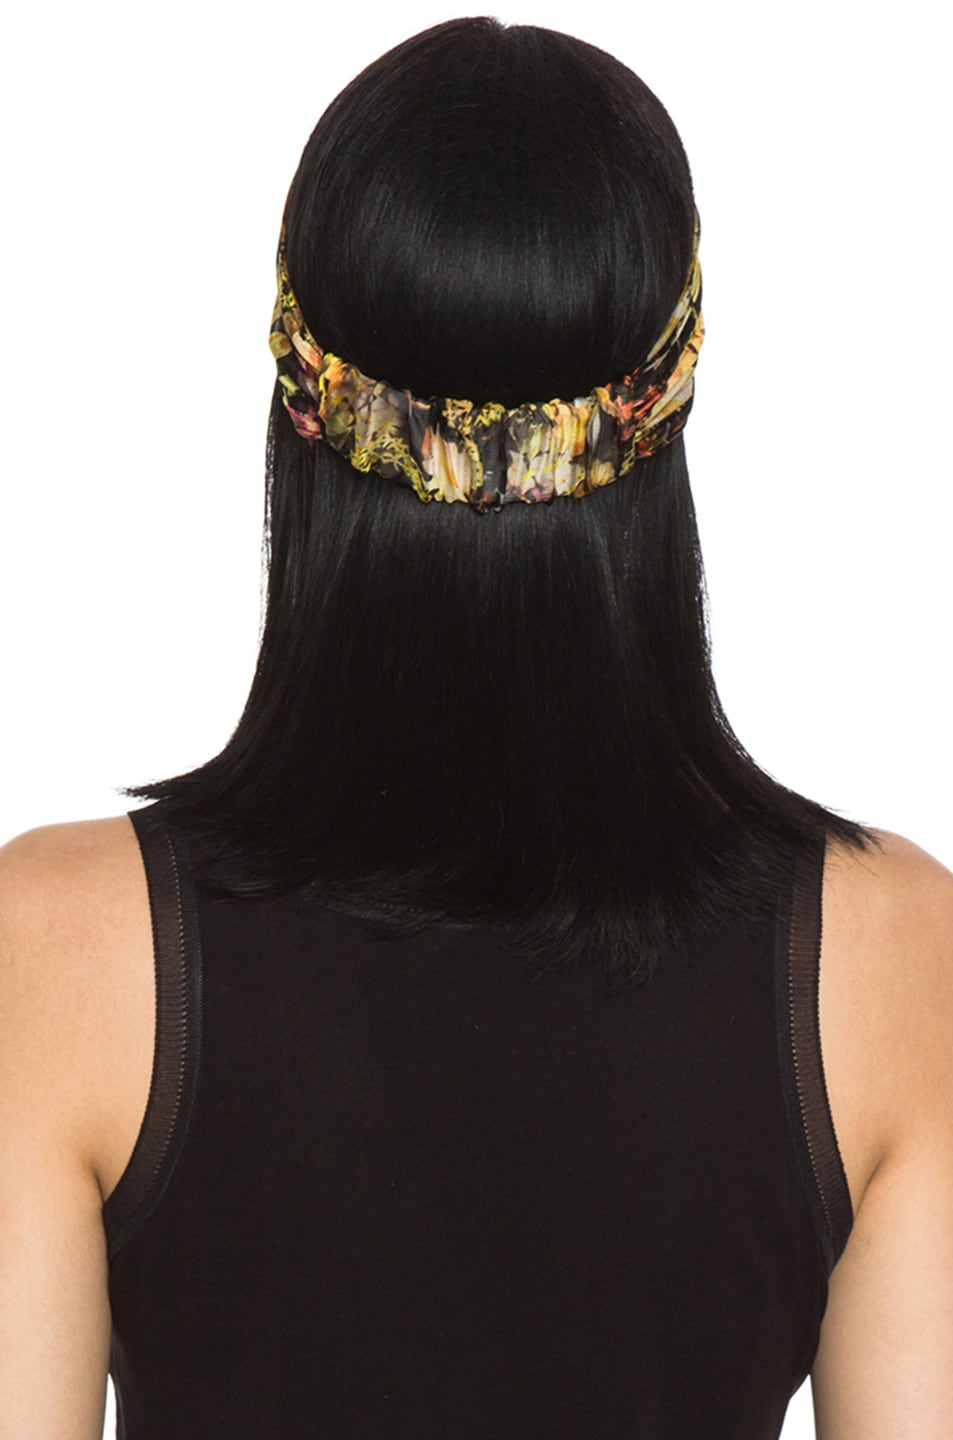 Image 4 of Eugenia Kim Natalia Floral Chiffon Turban Headband in Black & Multi